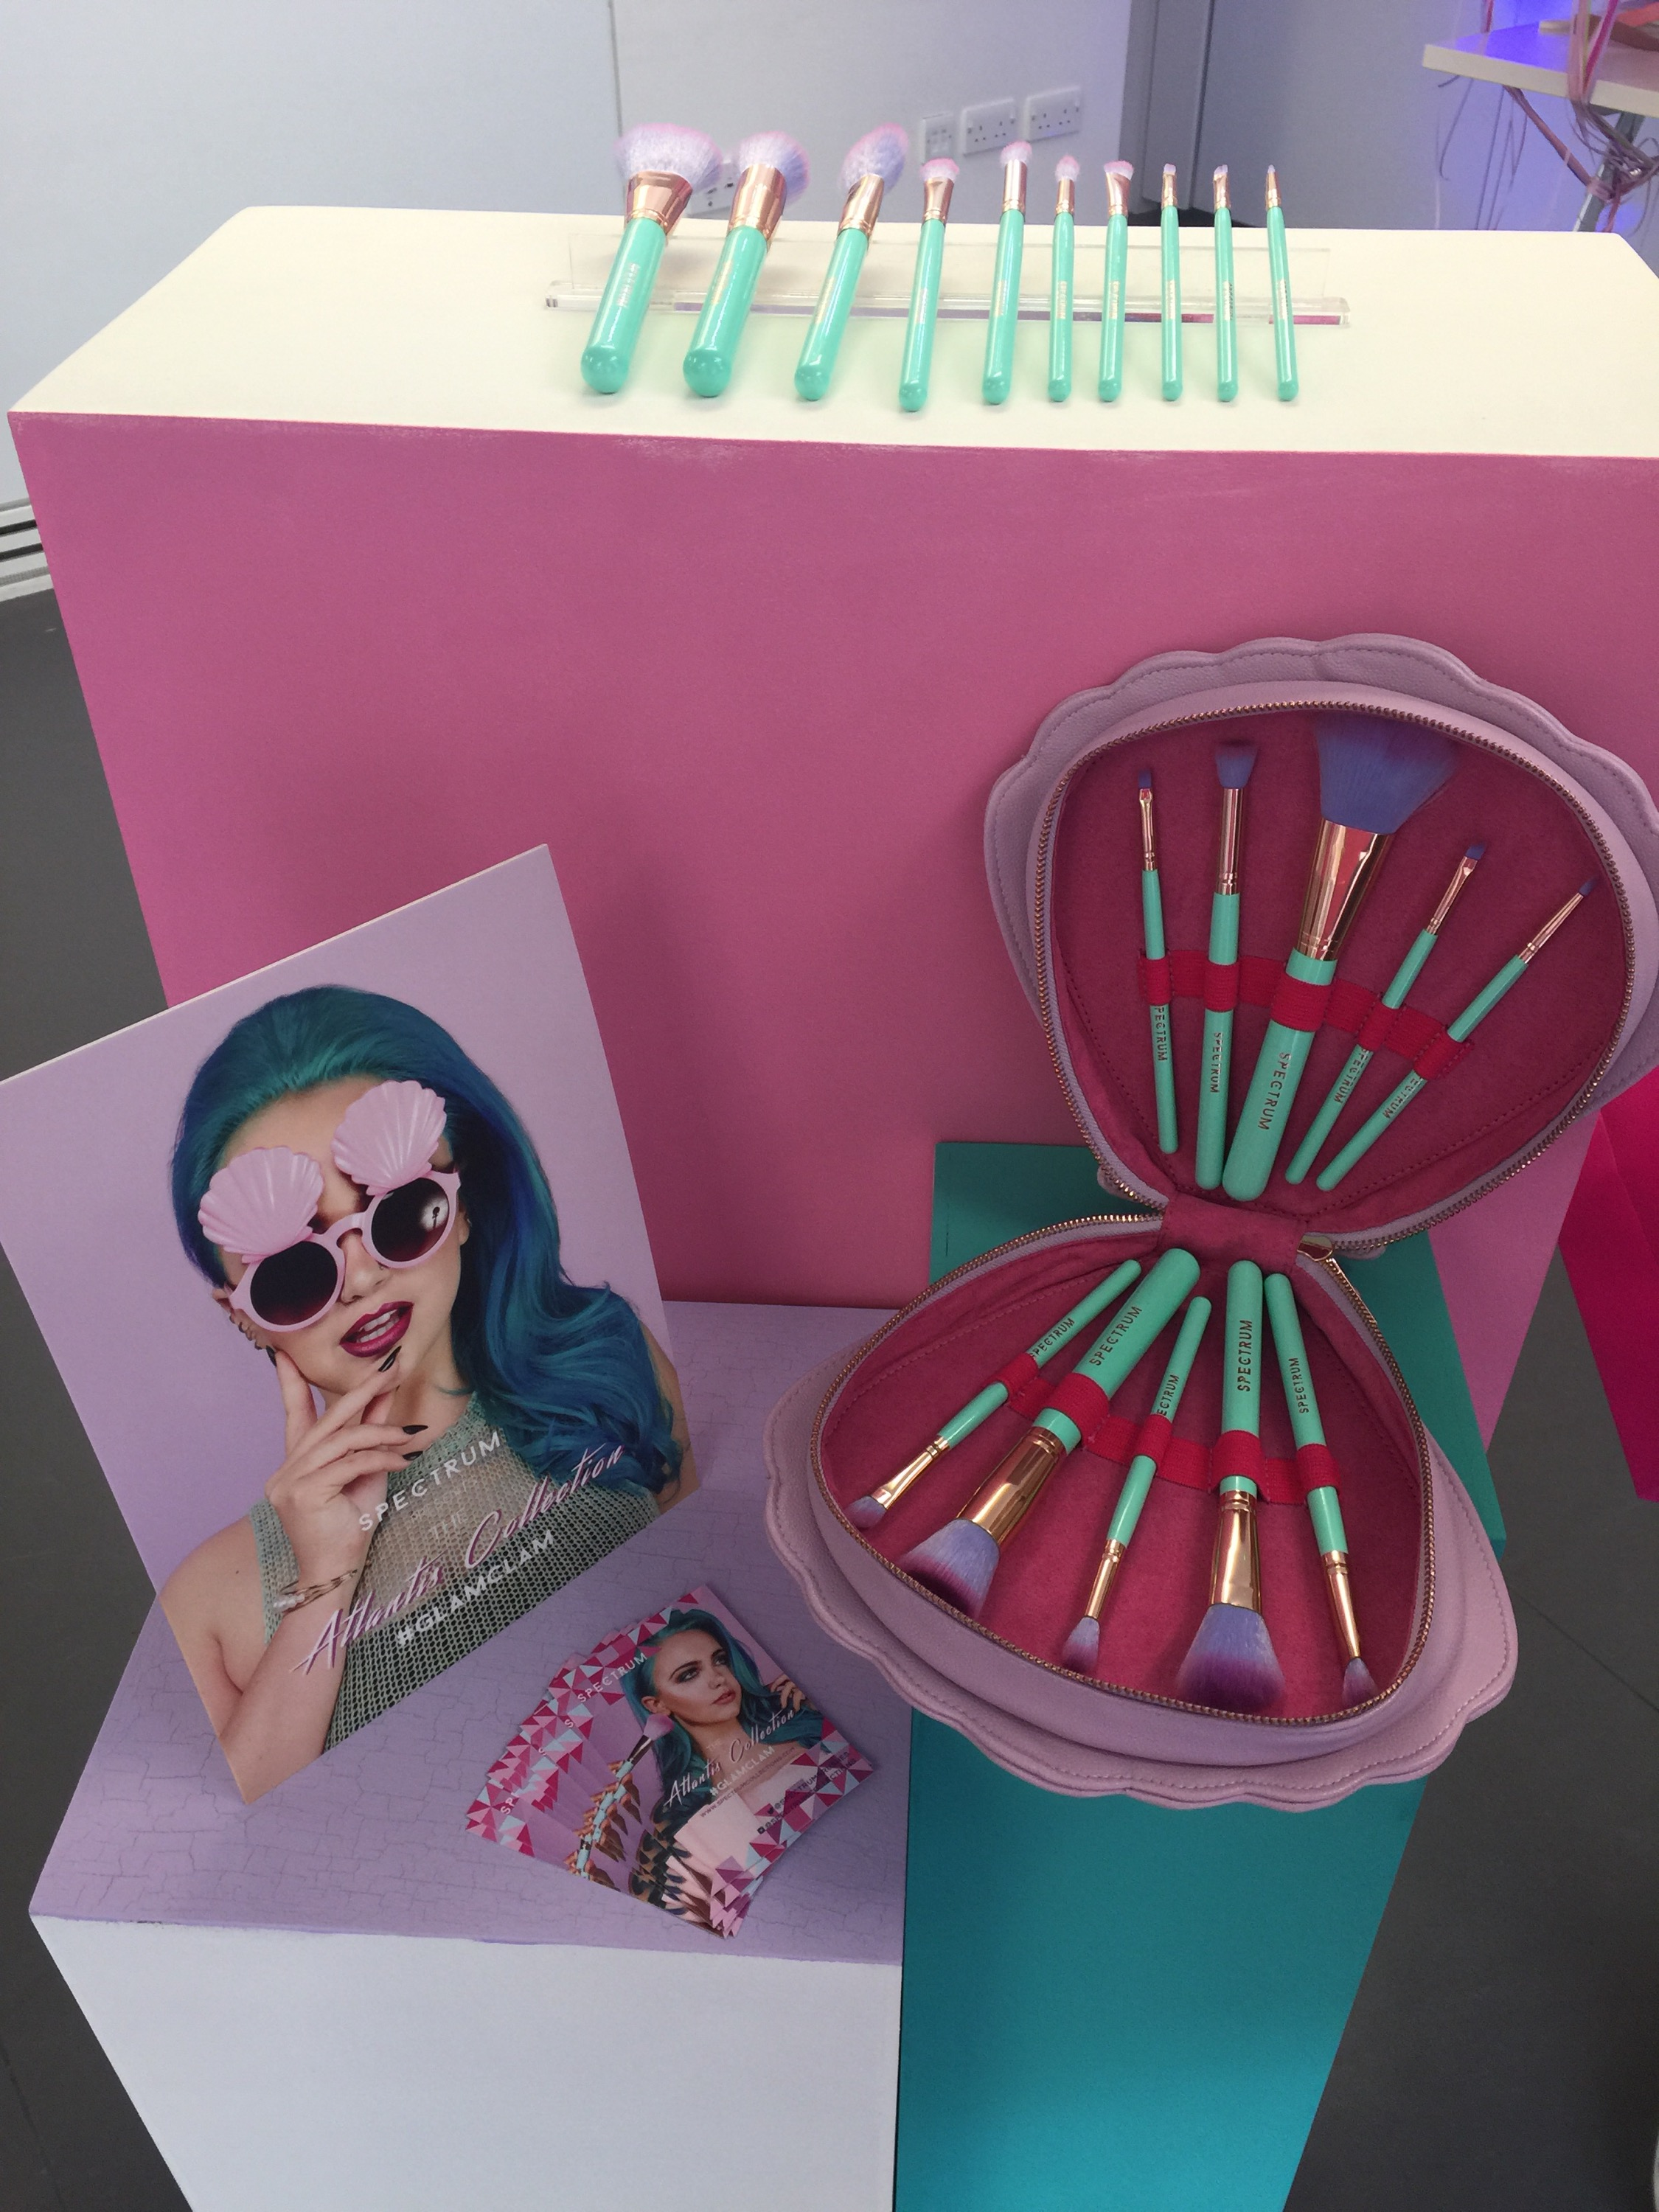 spectrum mermaid makeup brushes. i was lucky enough to be at the launch for spectrum collections latest makeup brush set! what a magical evening we all had, filled with lots of mermaid fun brushes